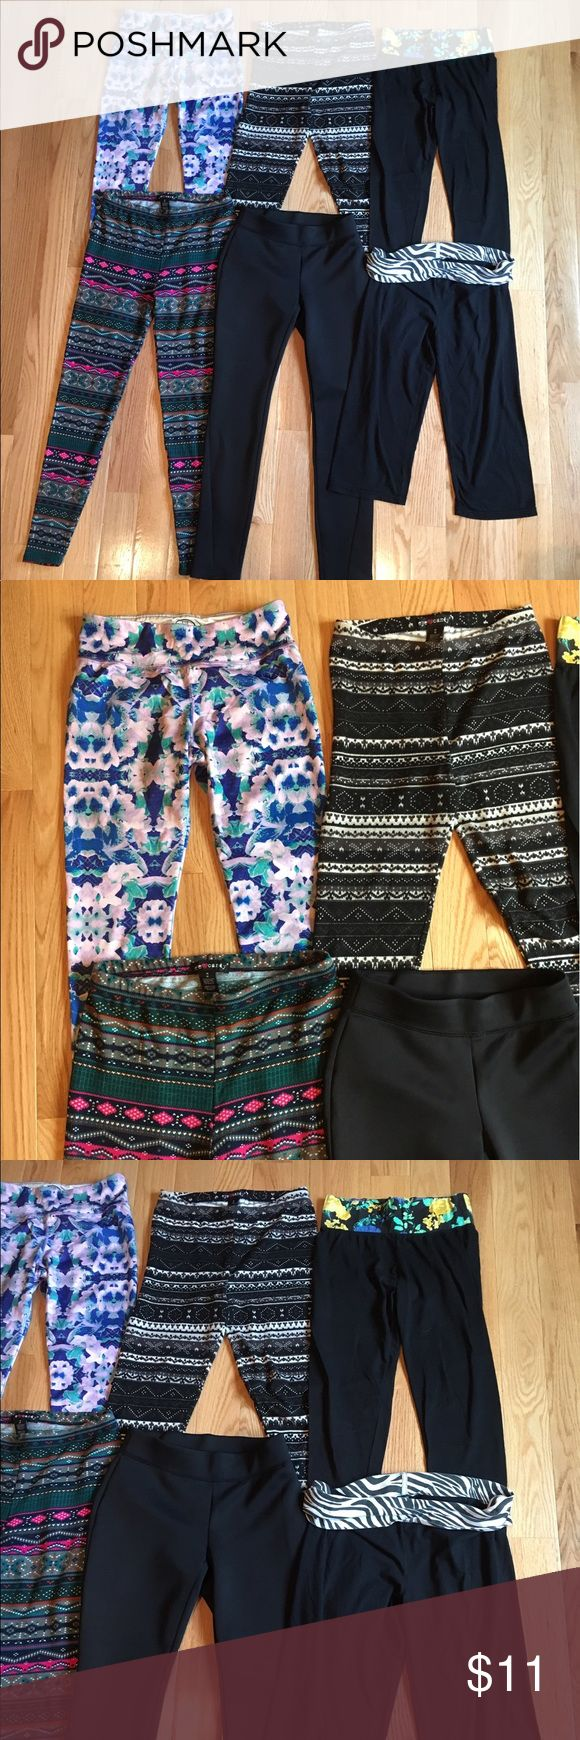 Bundle of 6 leggings and yogas ~Bundle of 6 pairs of leggings and yoga ~Sizes are indicated in last picture  ~All are in gently used condition with no stains or holes  ~Brands include l'amour, eye candy, high energie, Derek, and contact Pants Leggings